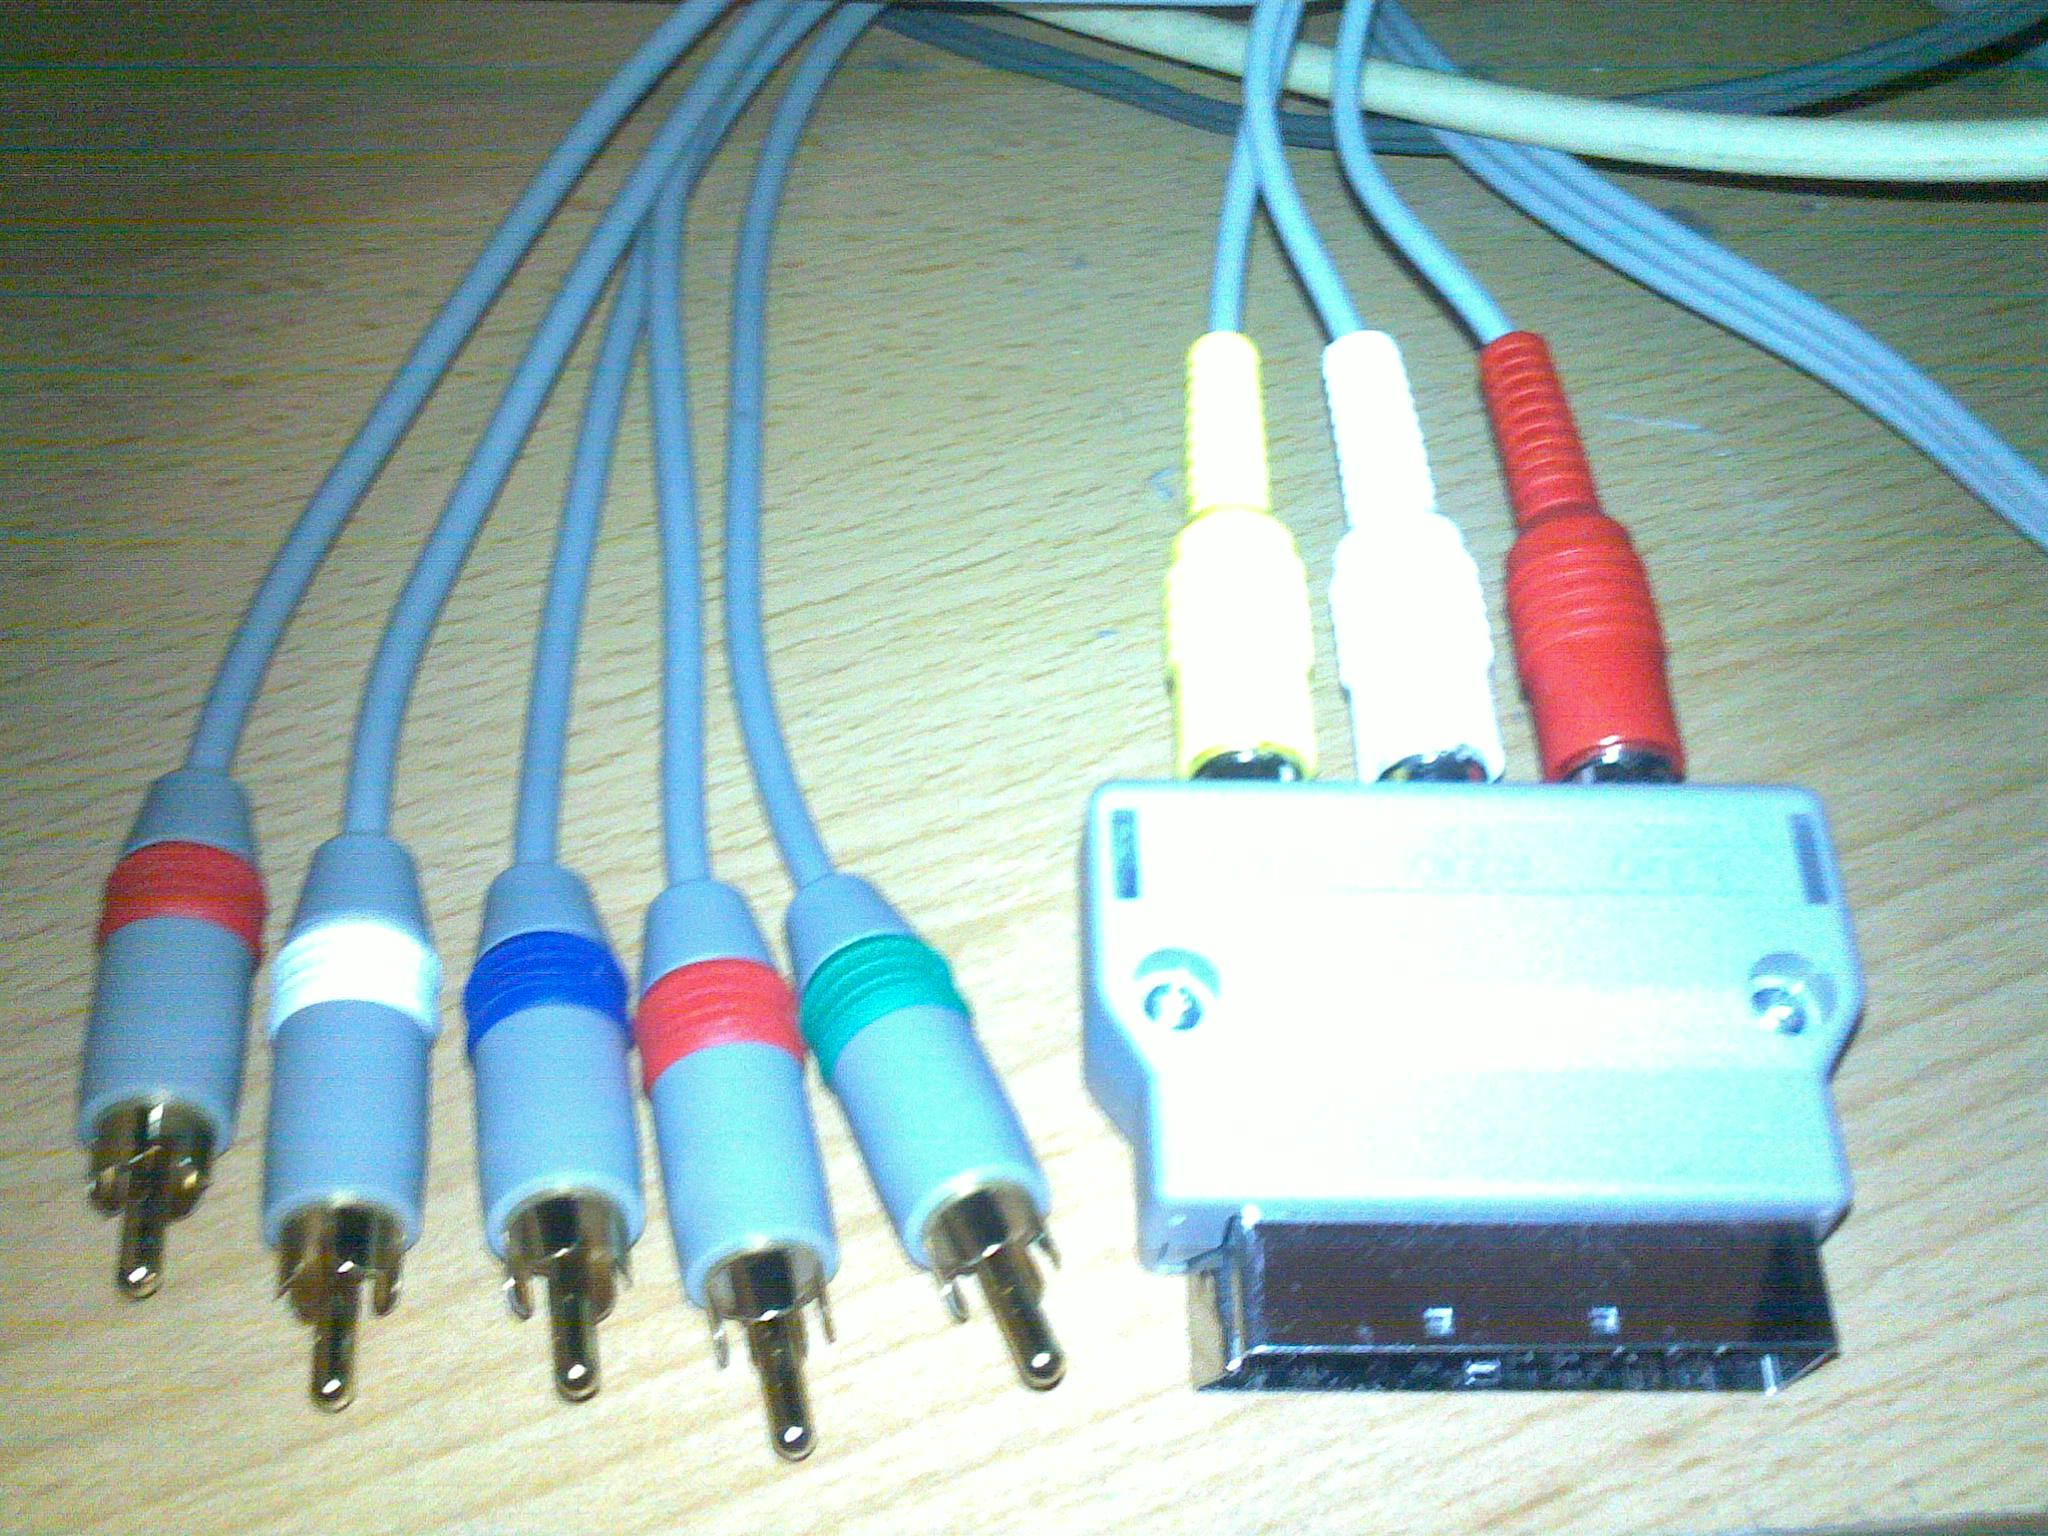 File:Wii classic a HDTV component kabel.jpg - Wikimedia Commons